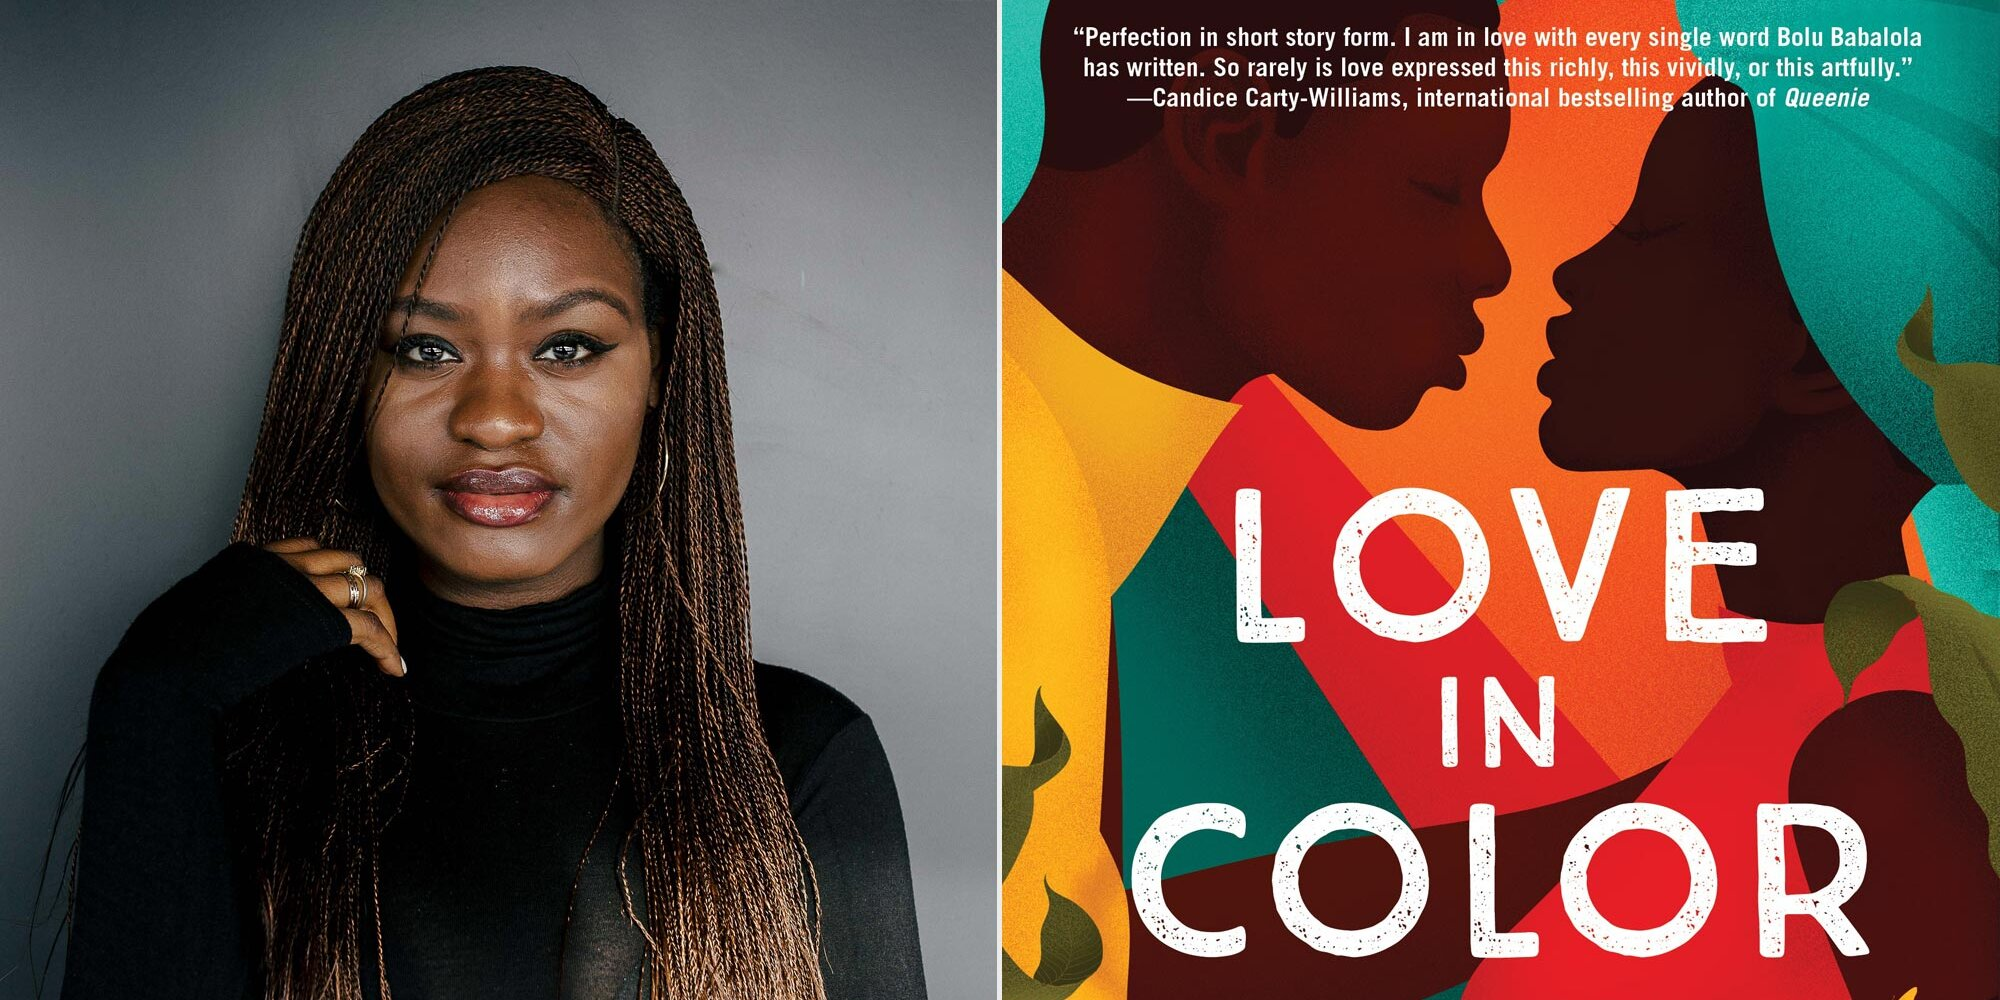 Bolu Babalola centers Black women and transforms folklore in 'Love in Color'